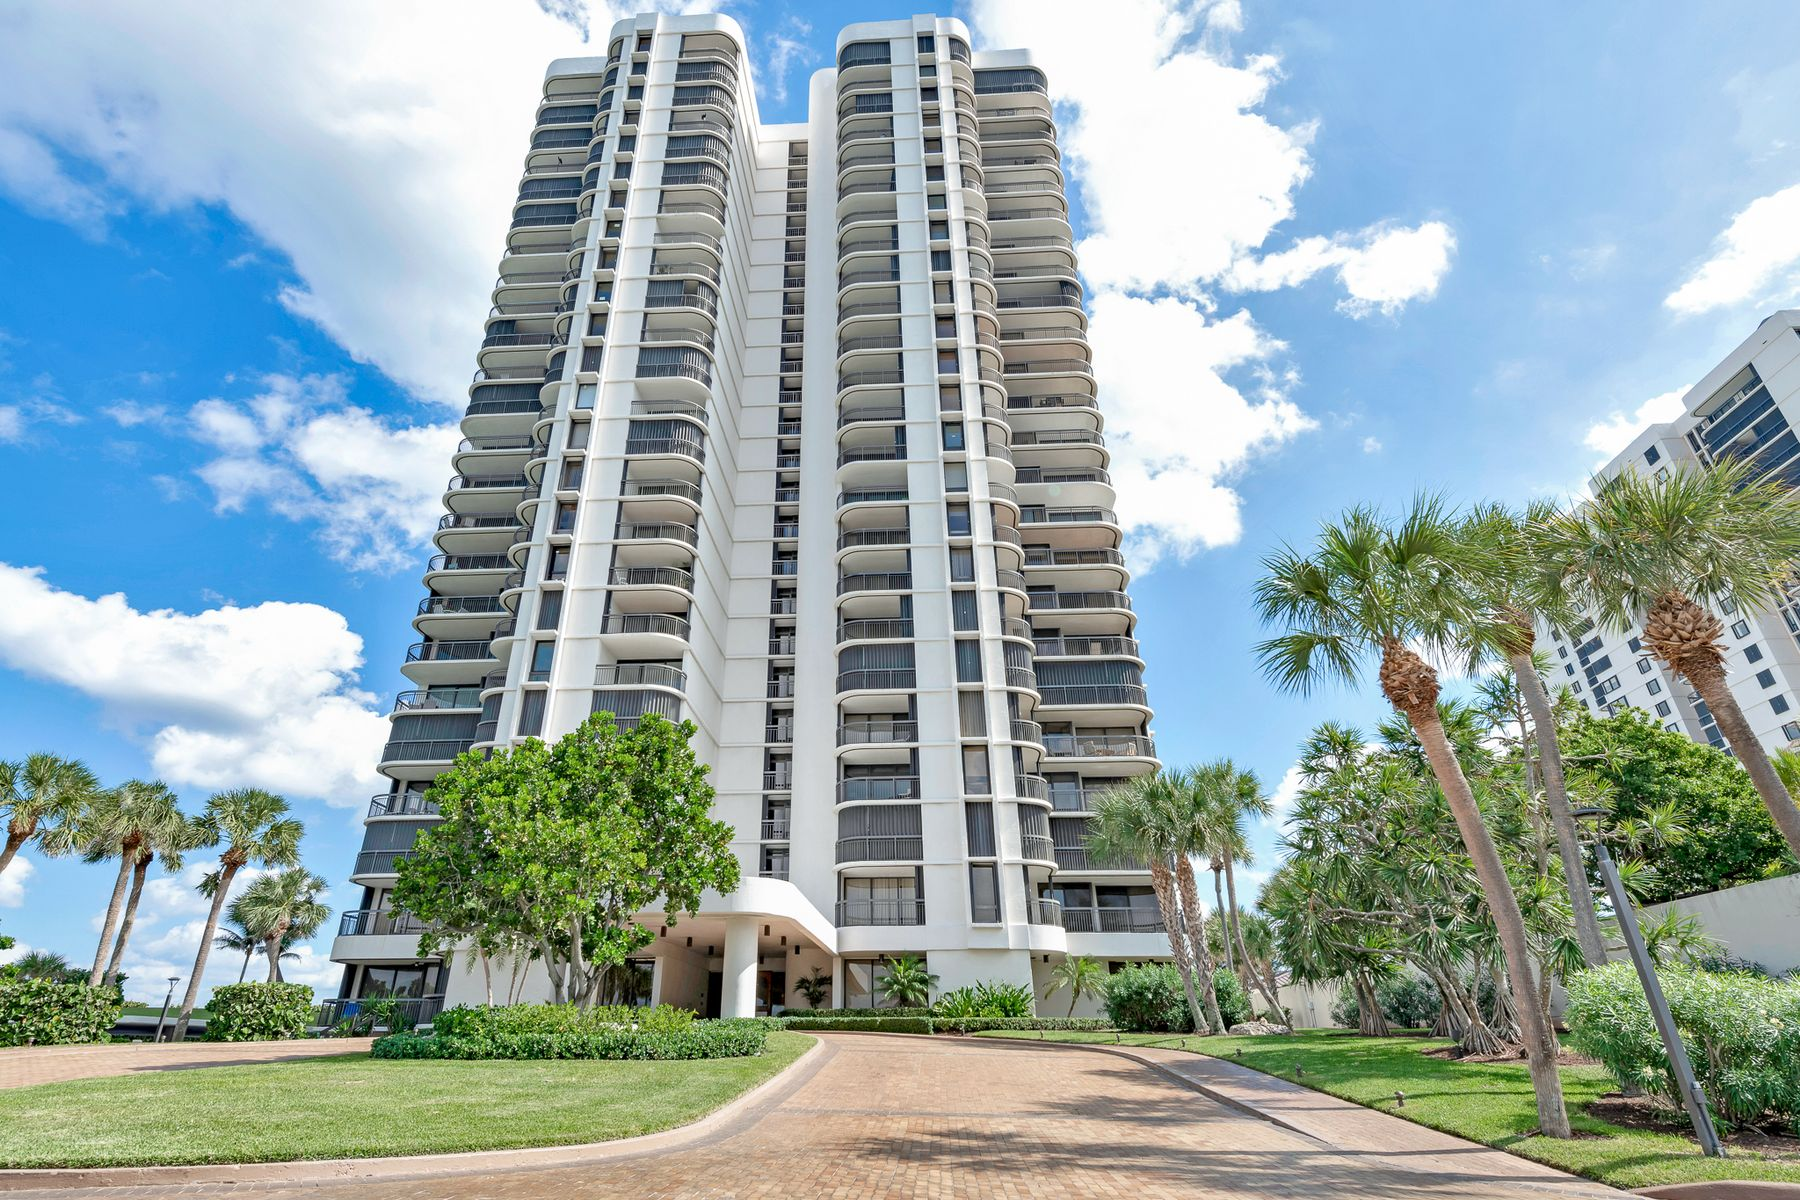 Condominium for Active at Panoramic Views - Sunrise to Sunset 5380 N Ocean Drive 6J Riviera Beach, Florida 33404 United States